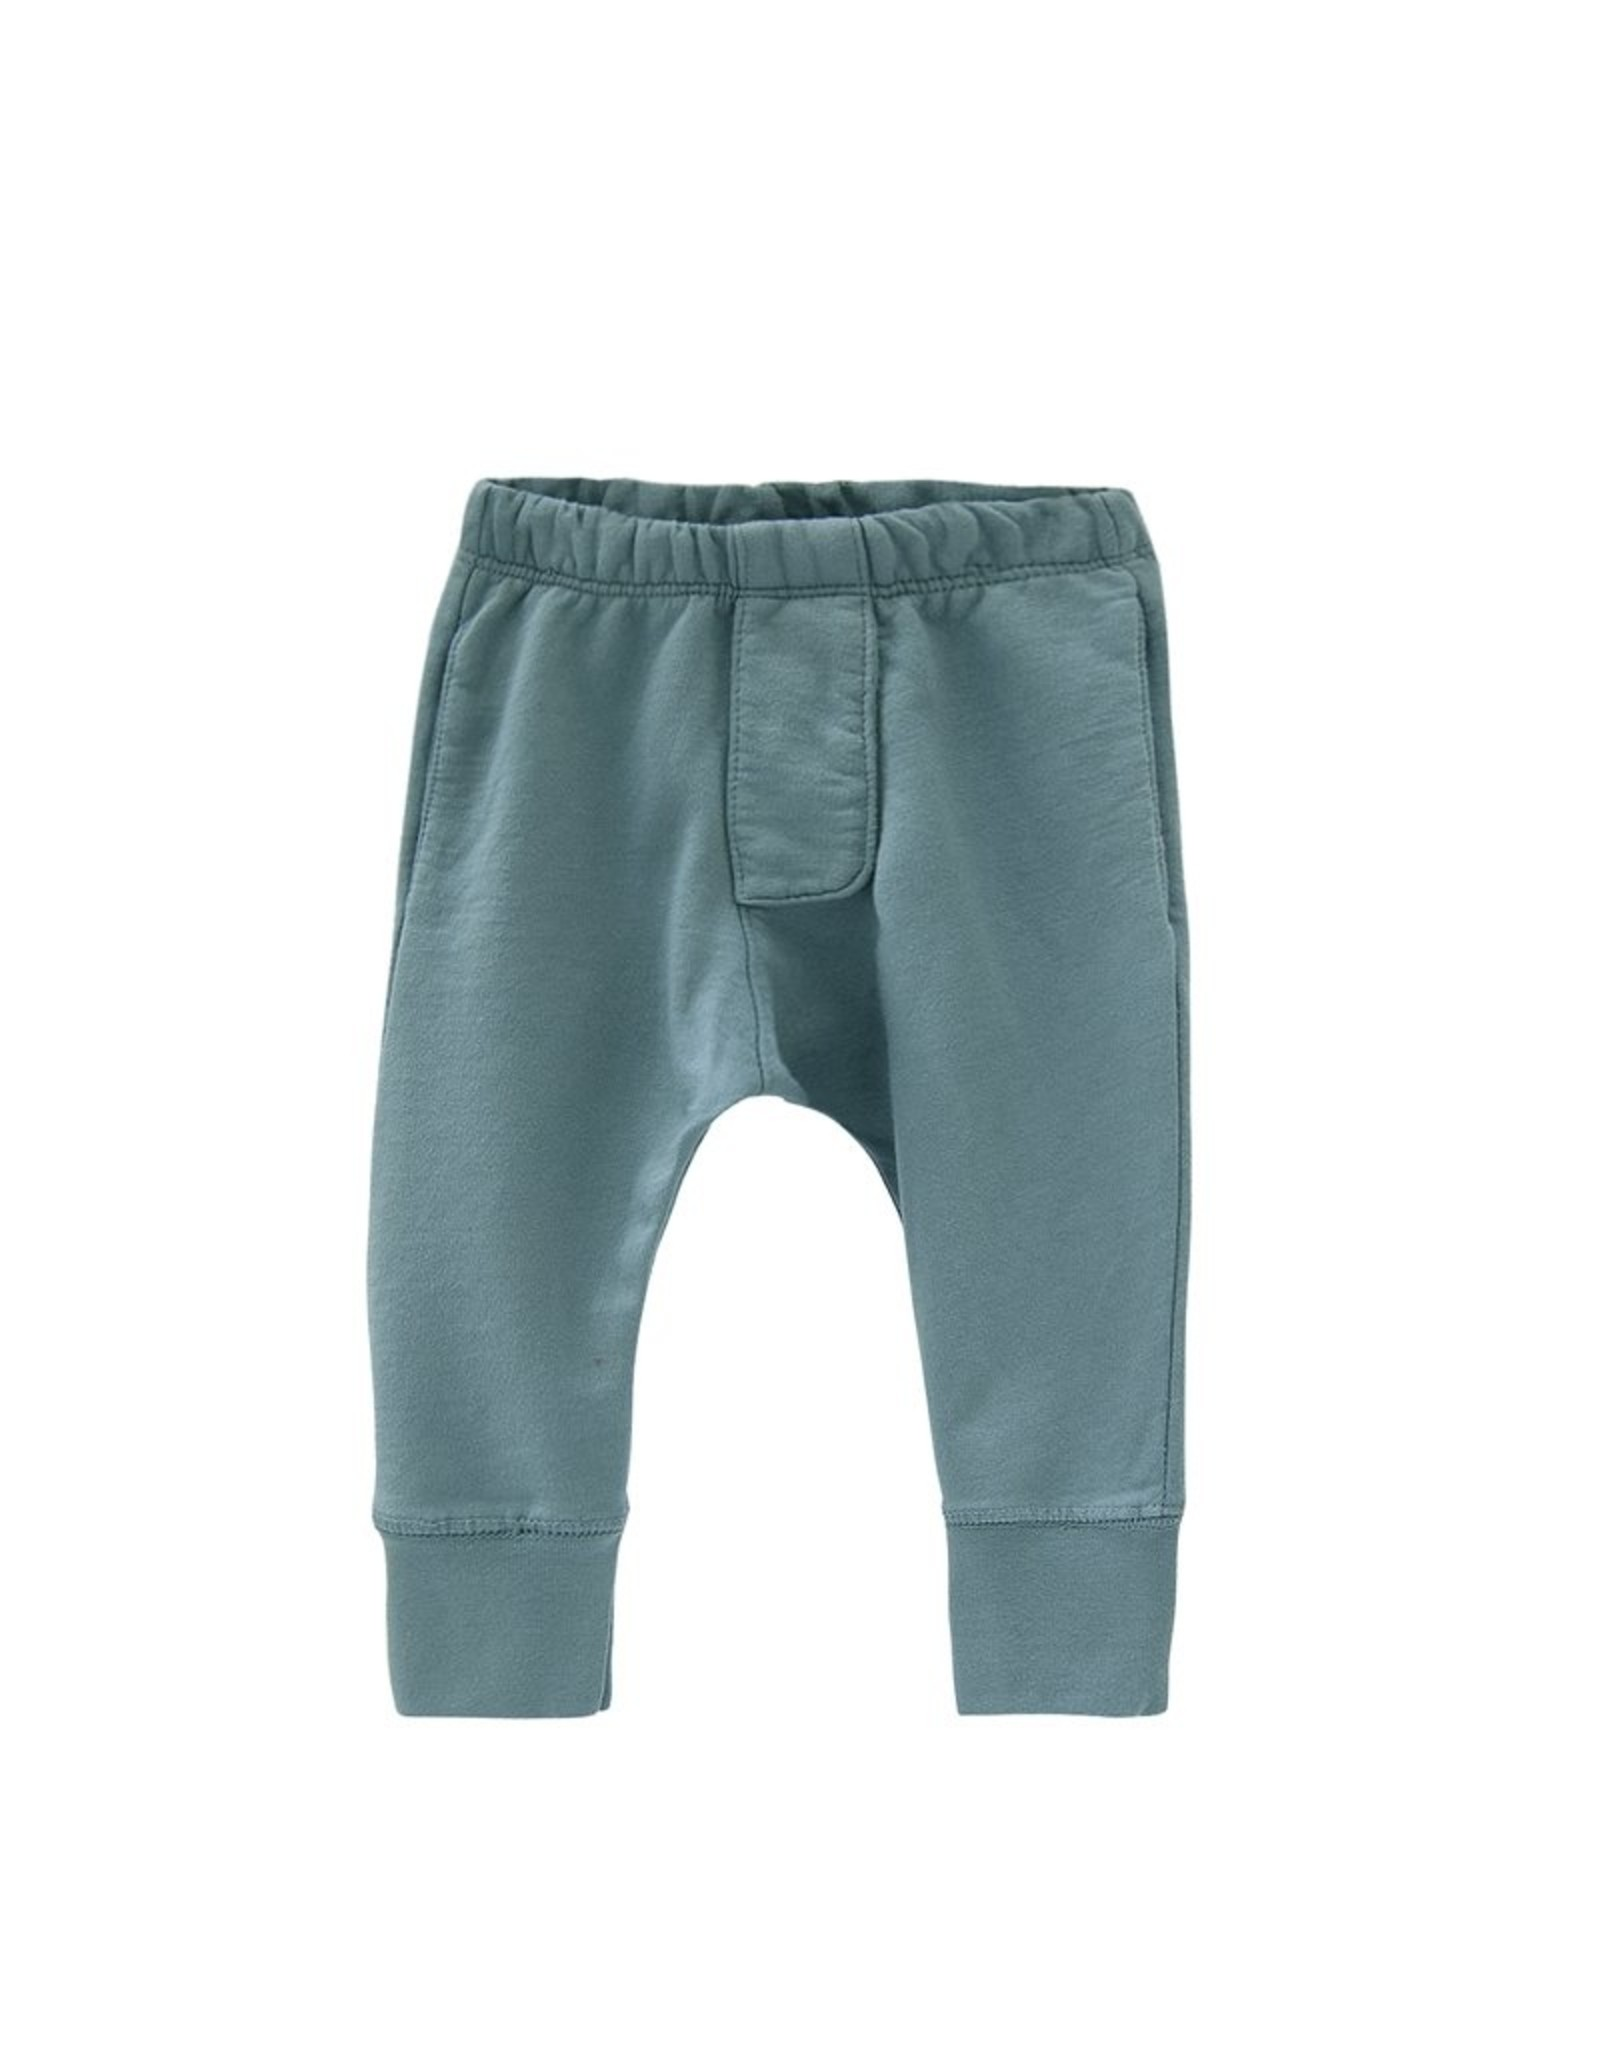 Go Gently Nation Trouser with pockets